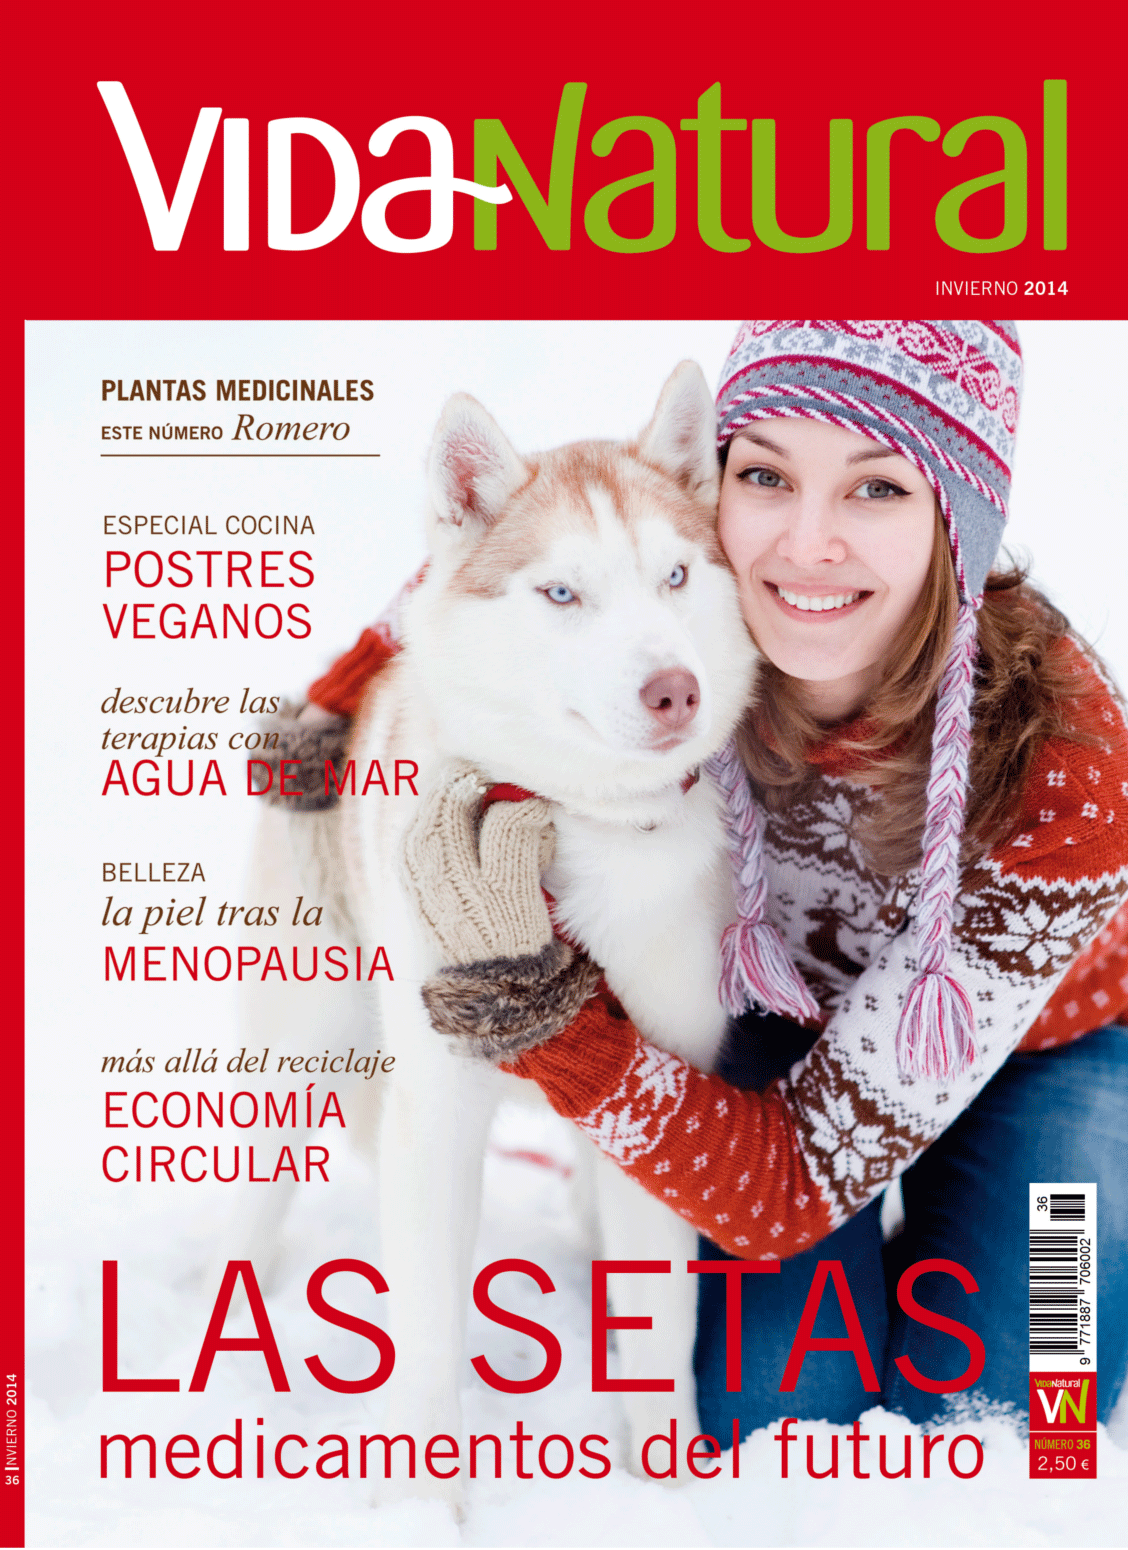 Revista Vida Natural nº 36